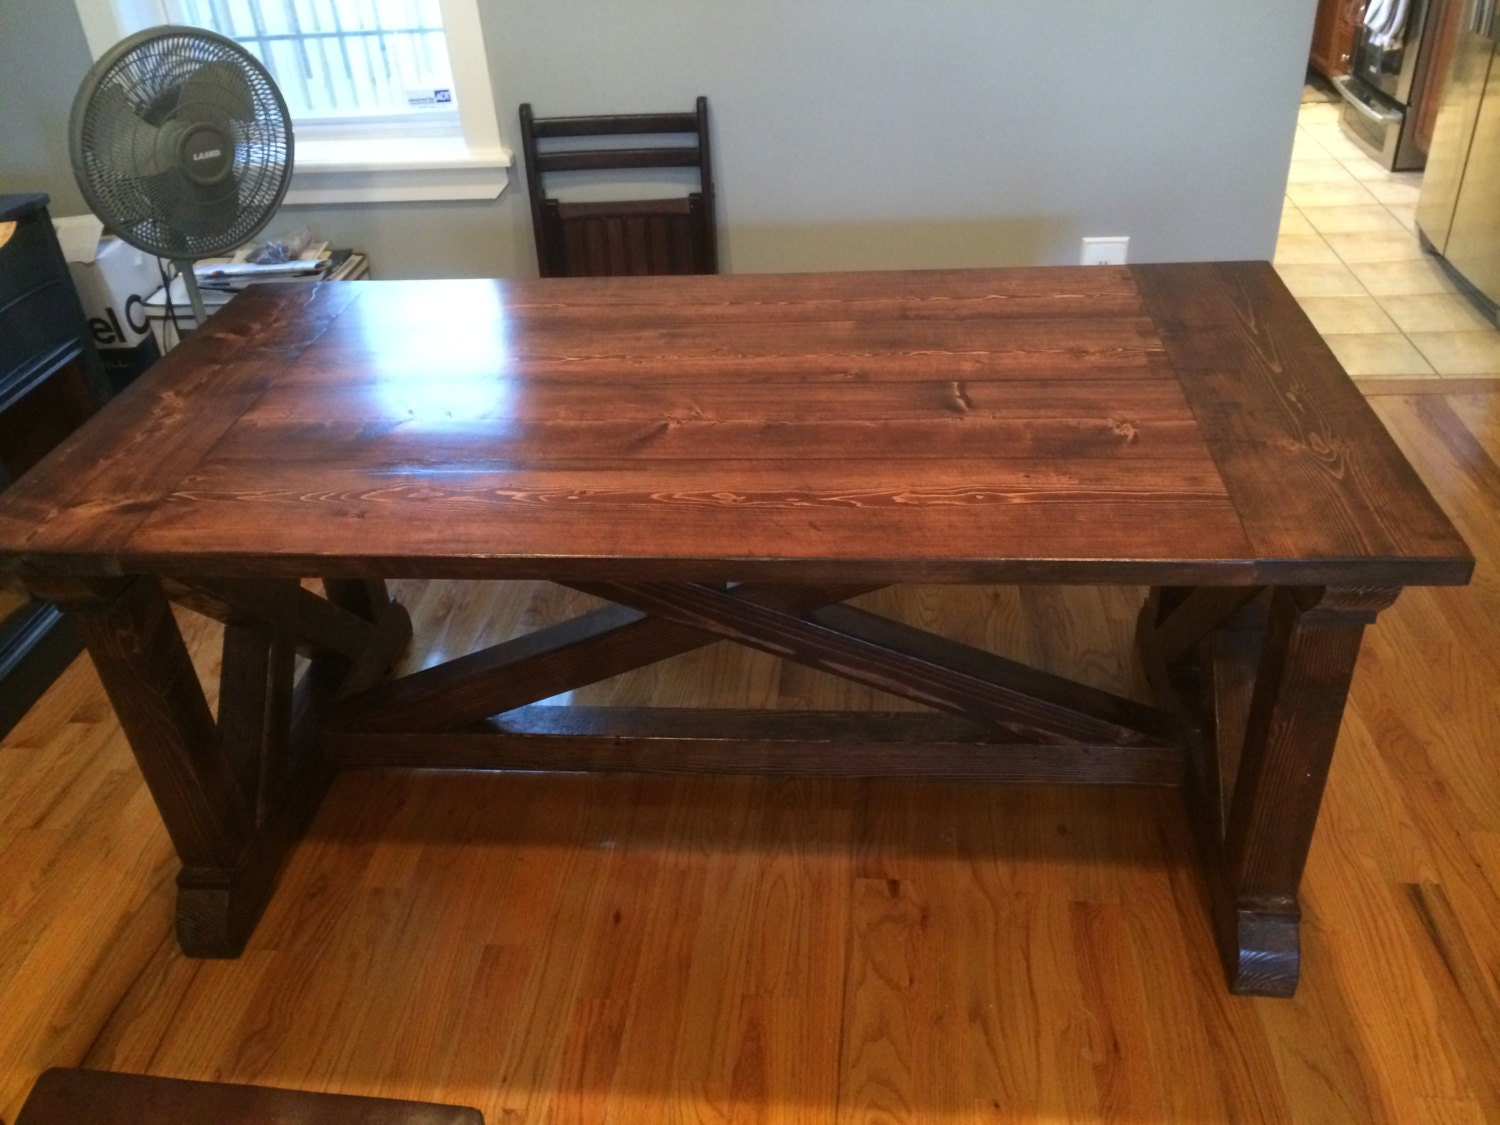 Rustic farmhouse table wih x legs 6 39 long by for Farmhouse table plans with x legs